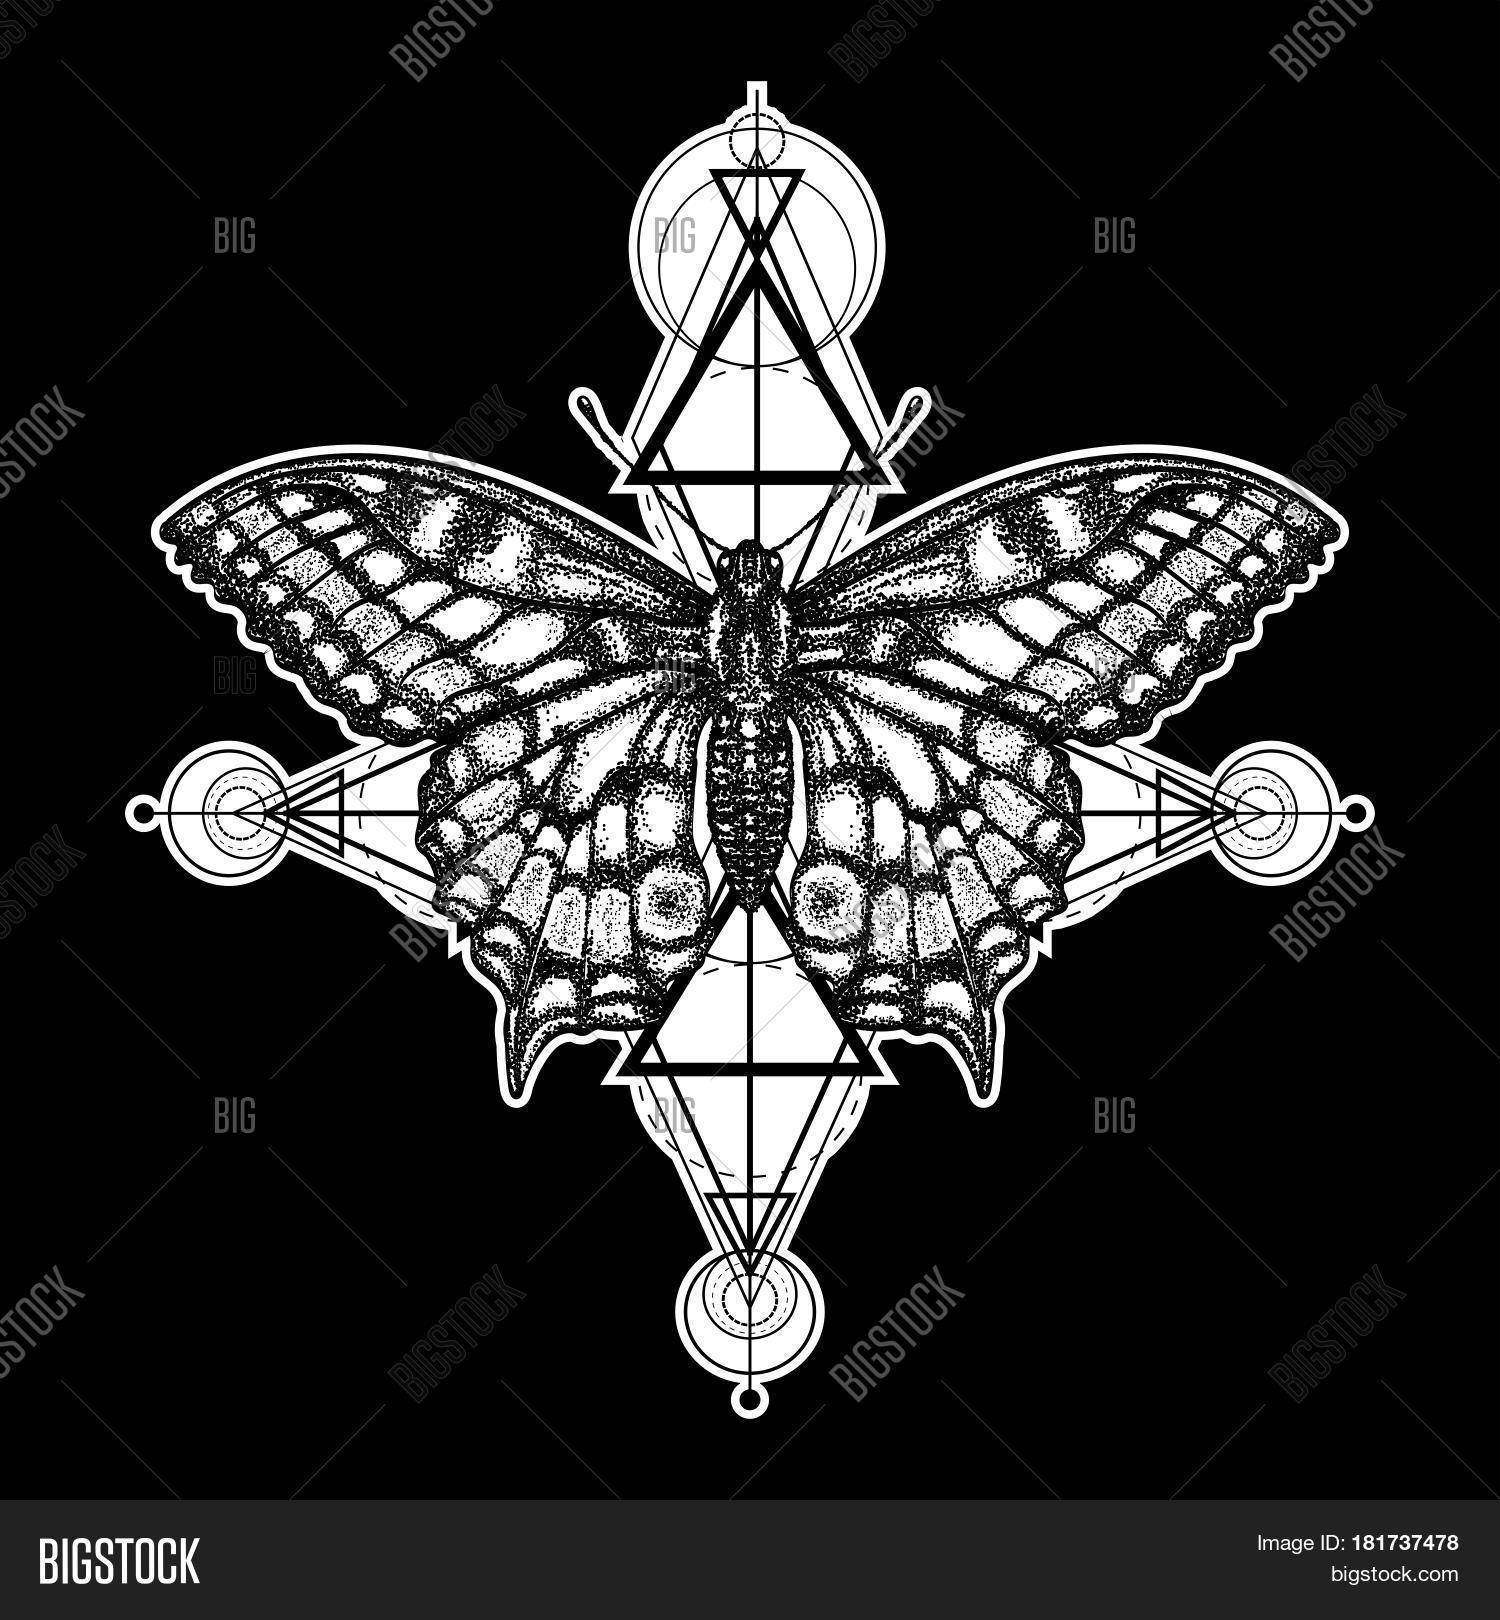 638a76df1110e Butterfly tattoo geometrical style. Beautiful Swallowtail boho t-shirt  design. Mystical symbol of